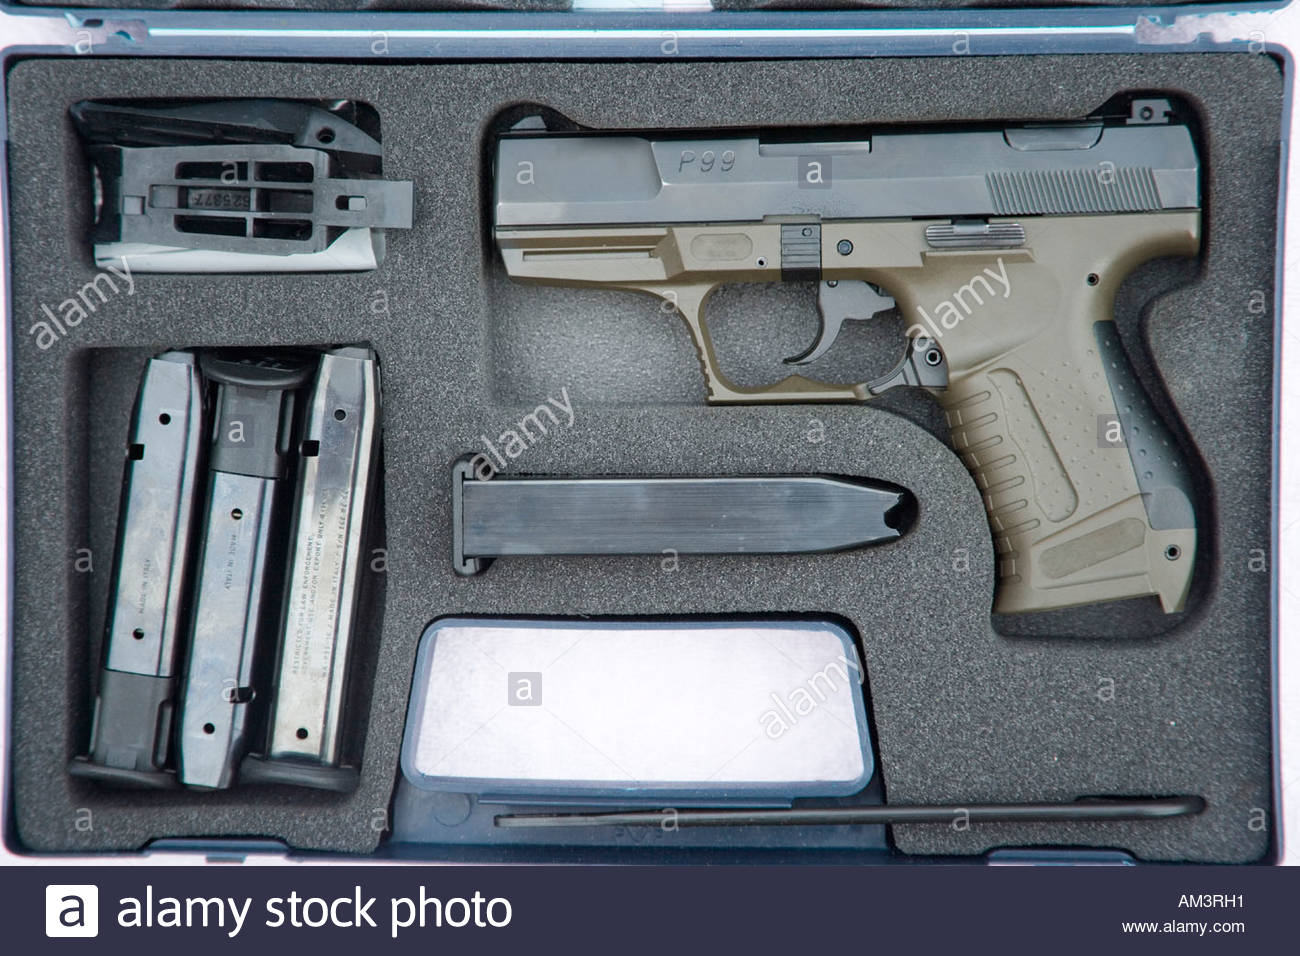 walther p99 semi automatic handgun and accessories in package stock